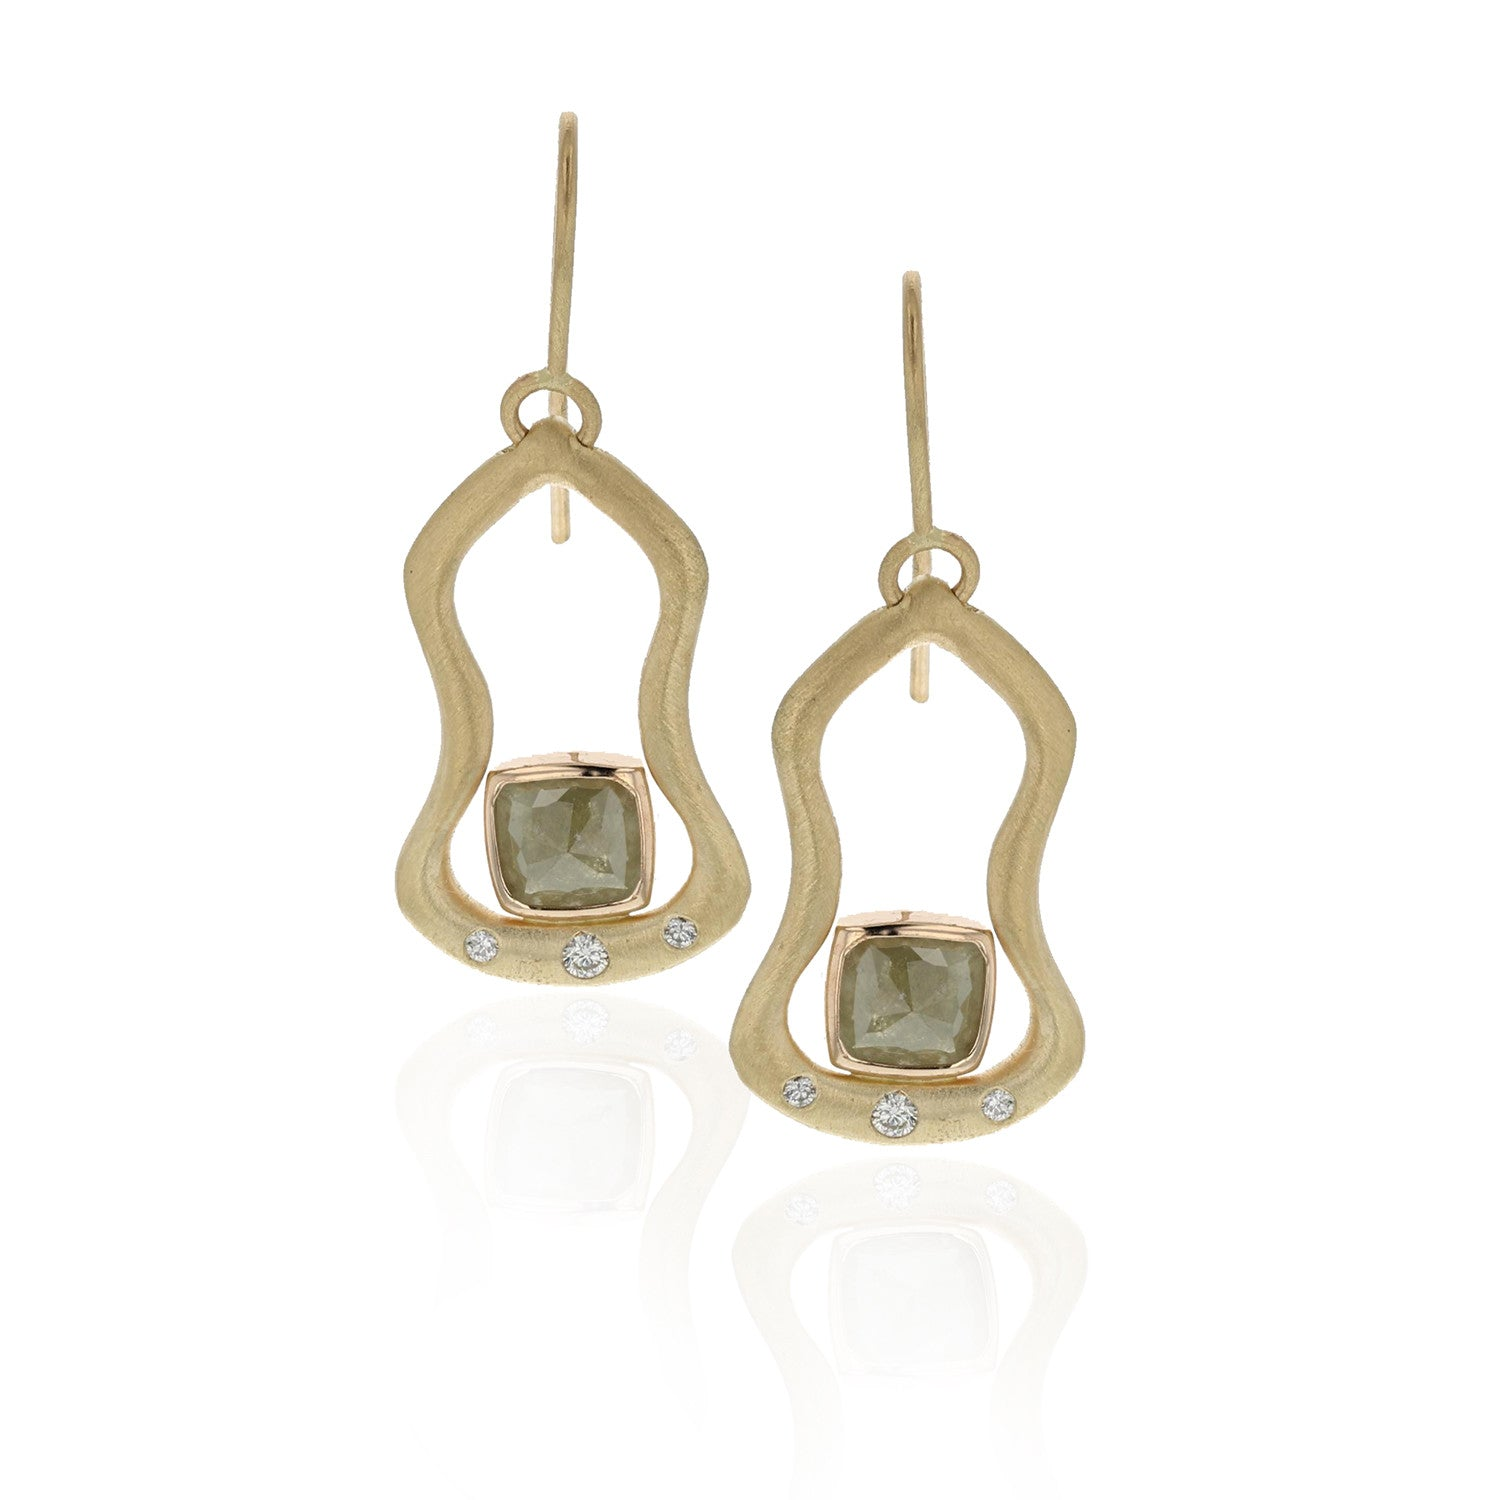 Island Earrings - 18K yellow gold